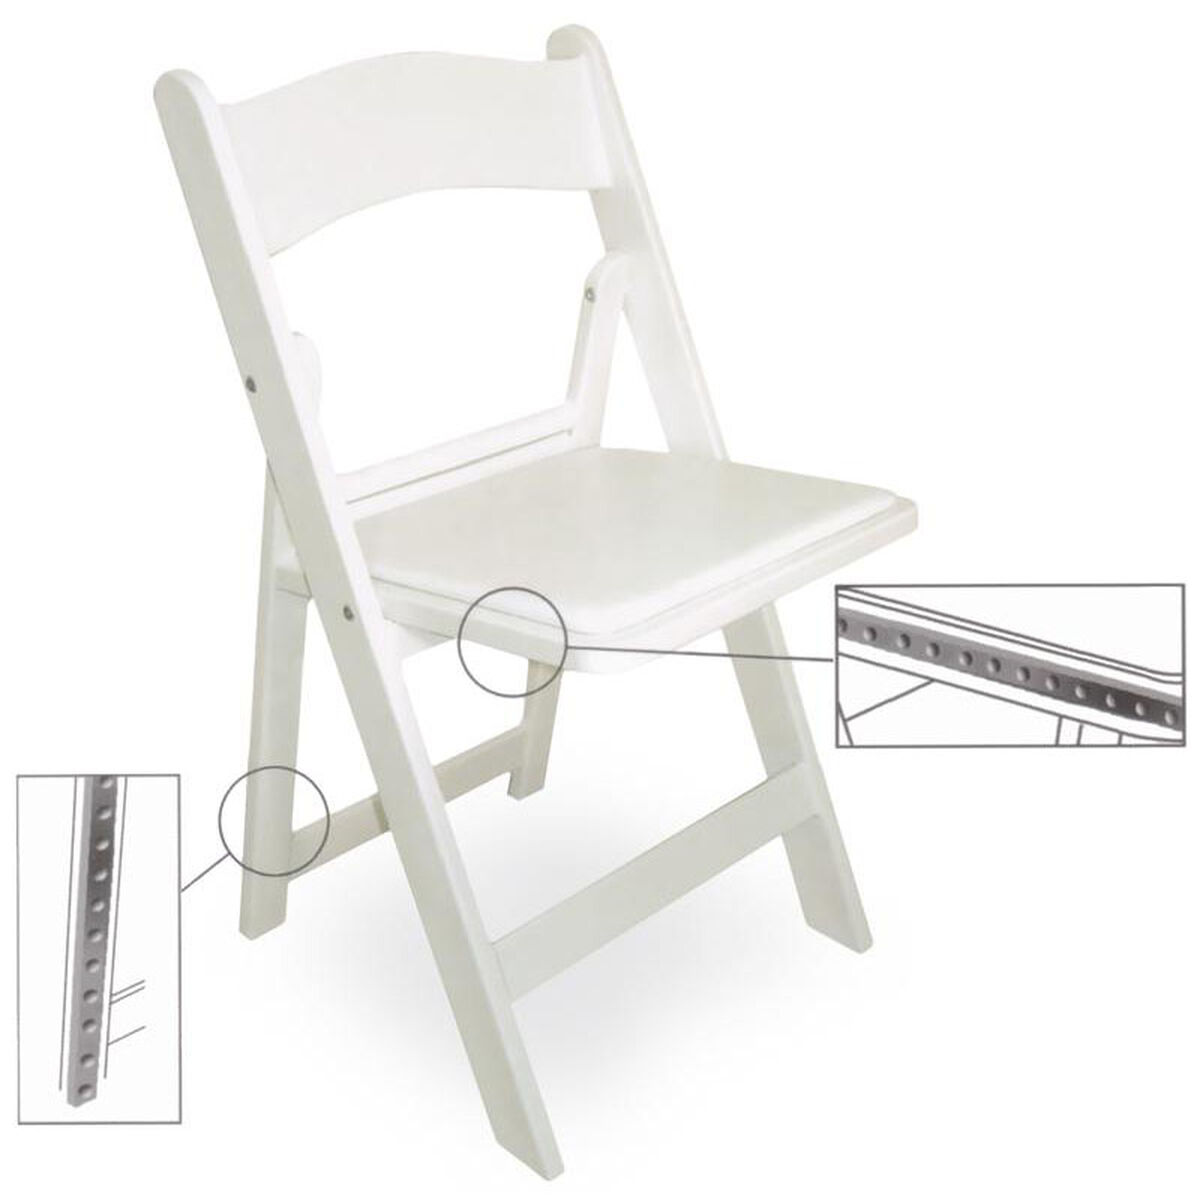 Magnificent Gala Resin Steel Reinforced Stackable Folding Chair With Padded Seat White Uwap Interior Chair Design Uwaporg